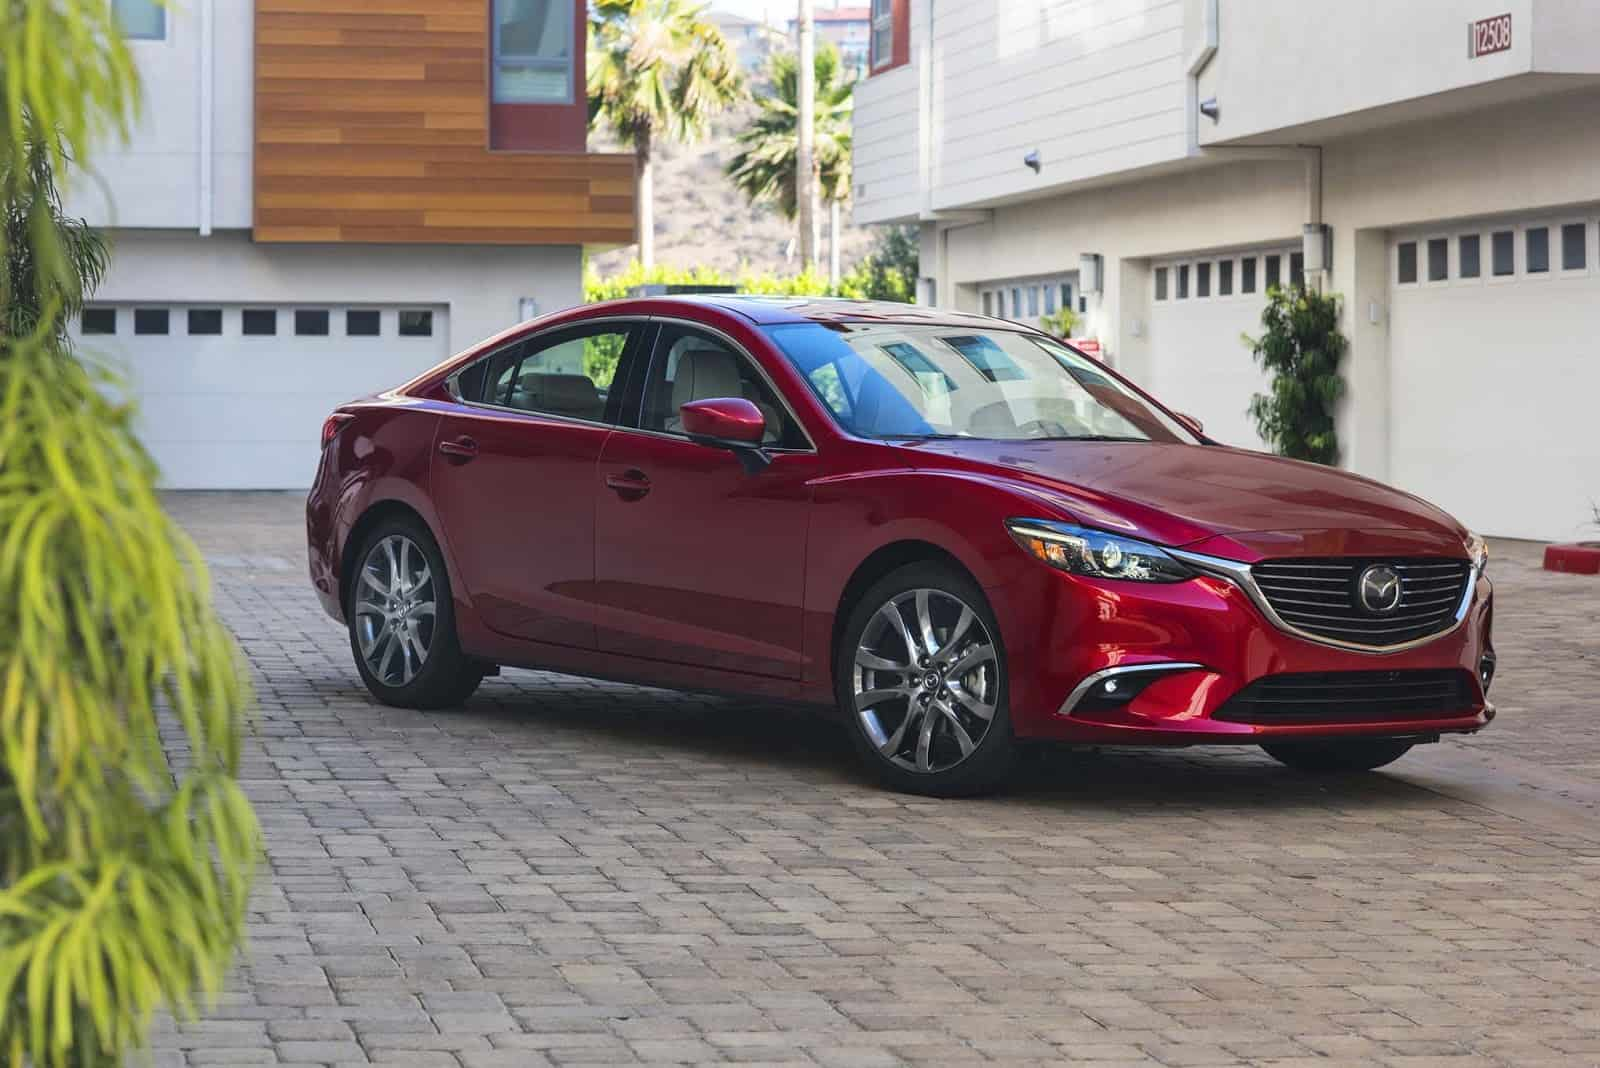 If you just bought a 2017 Mazda 6, these are the mods you need to upgrade your ride.